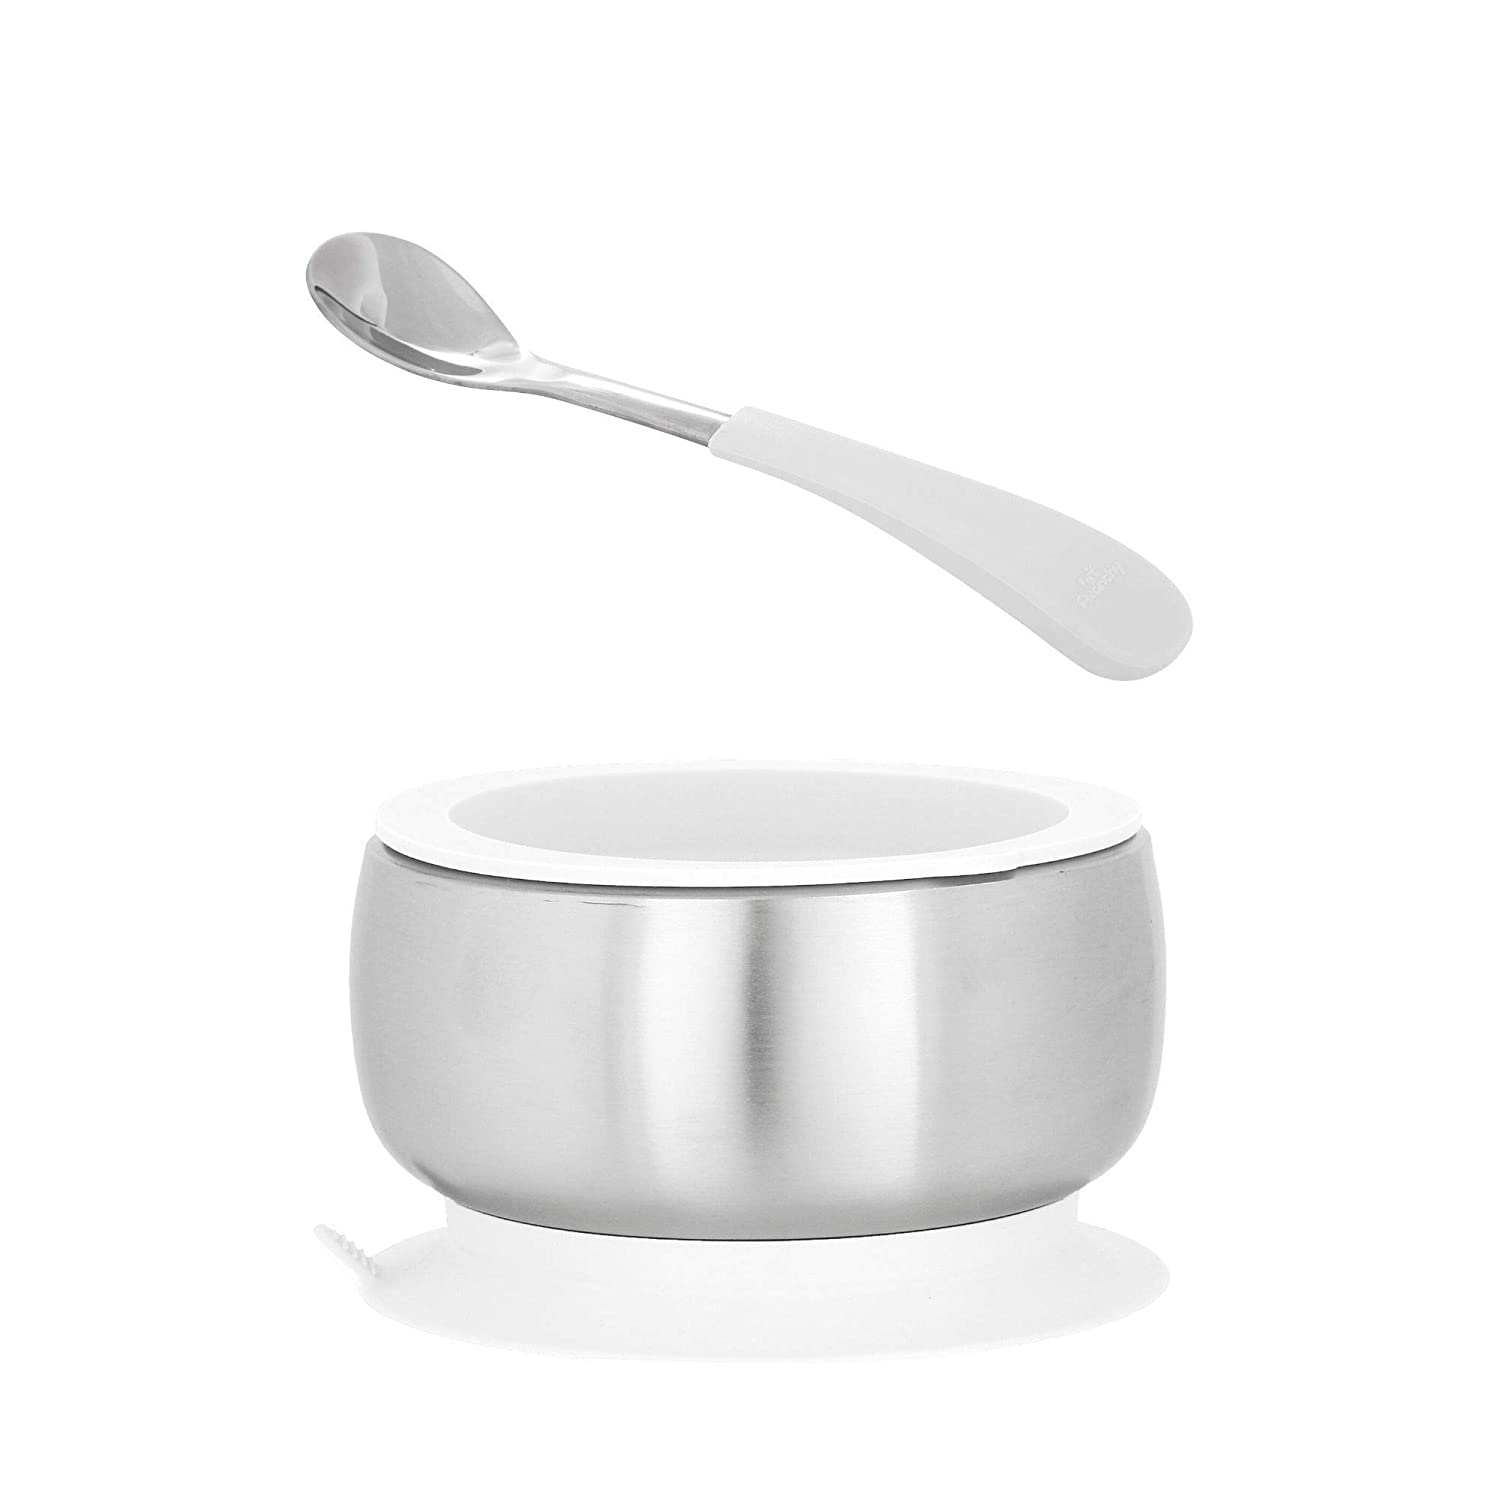 Avanchy Baby Toddler Feeding   Stainless Steel Stay Put Bowl Suction + Soft Silicone Handle Spoon + Lid Set   BPA Free   Great Infant Gift Pack (Infant, White)